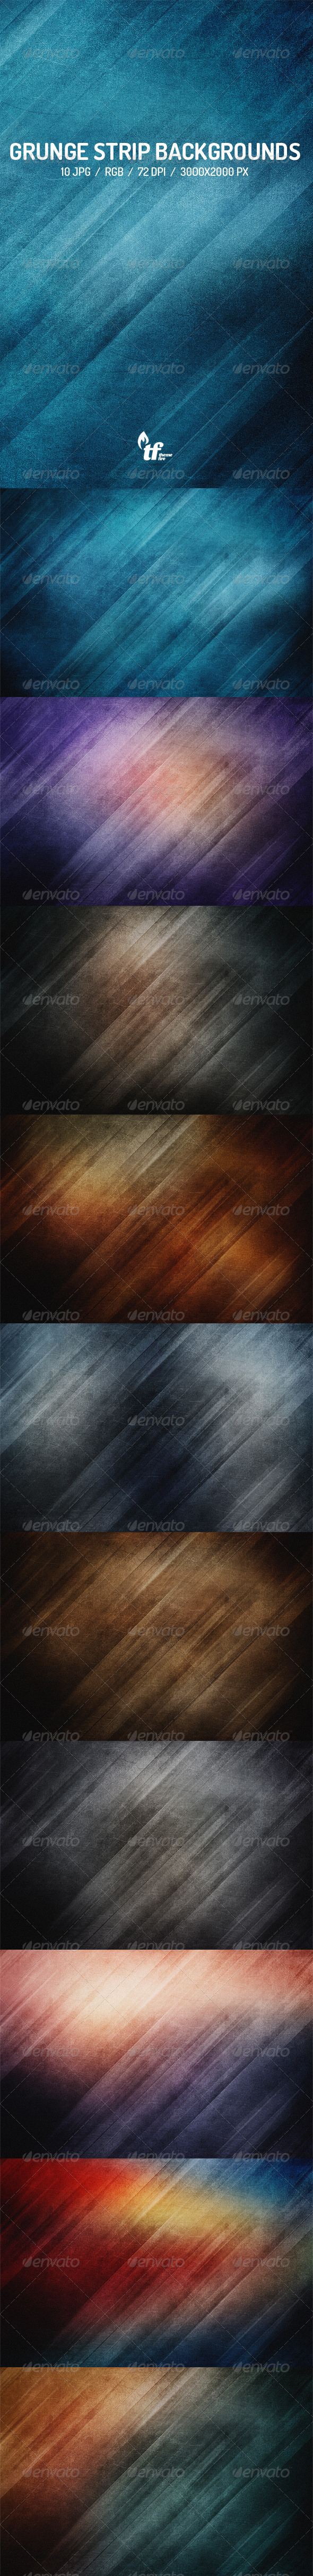 GraphicRiver Grunge Strip Backgrounds 7763304